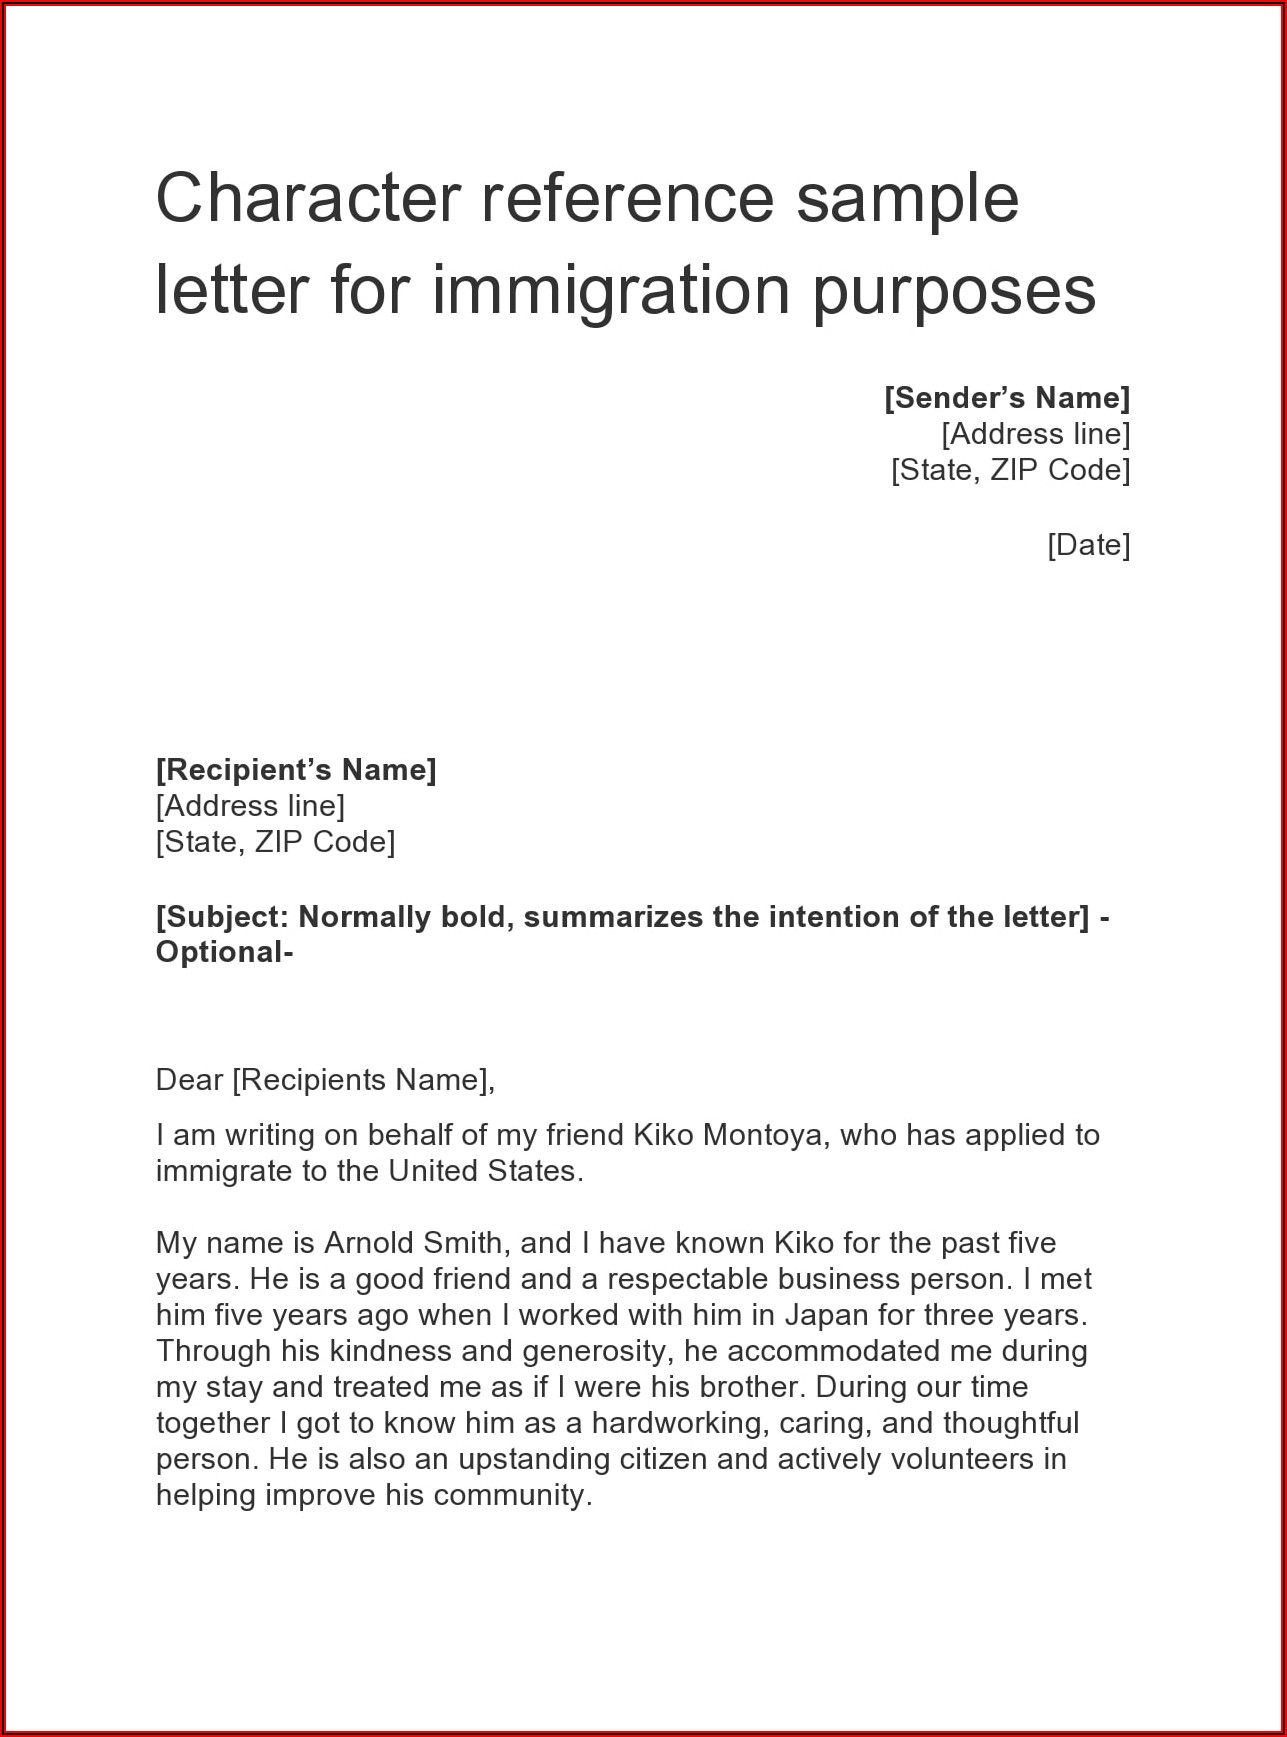 Character Reference Letter For Immigration Purposes